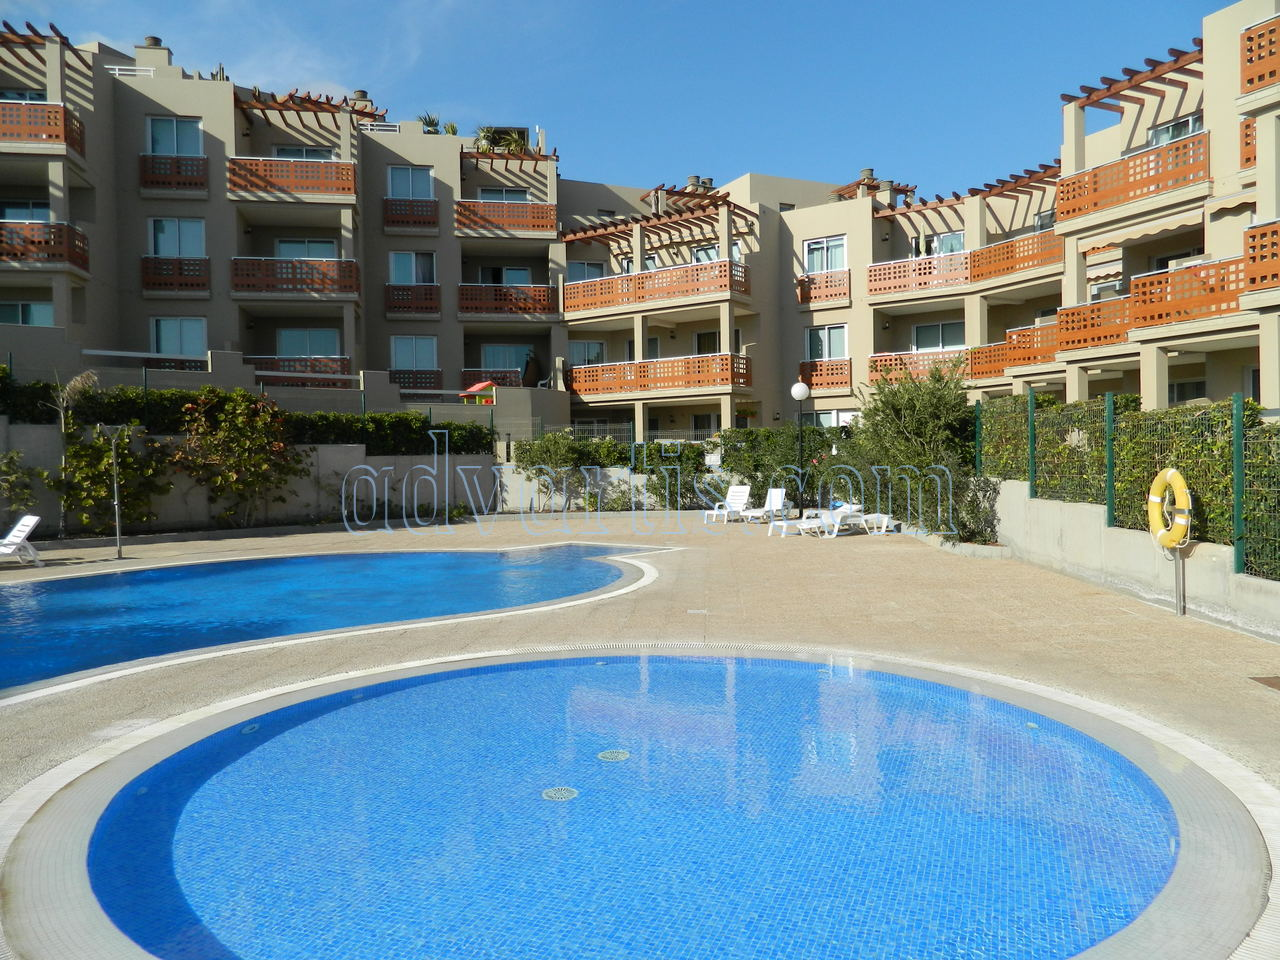 1 bedroom apartment for sale in Sotavento, Tenerife €175.000